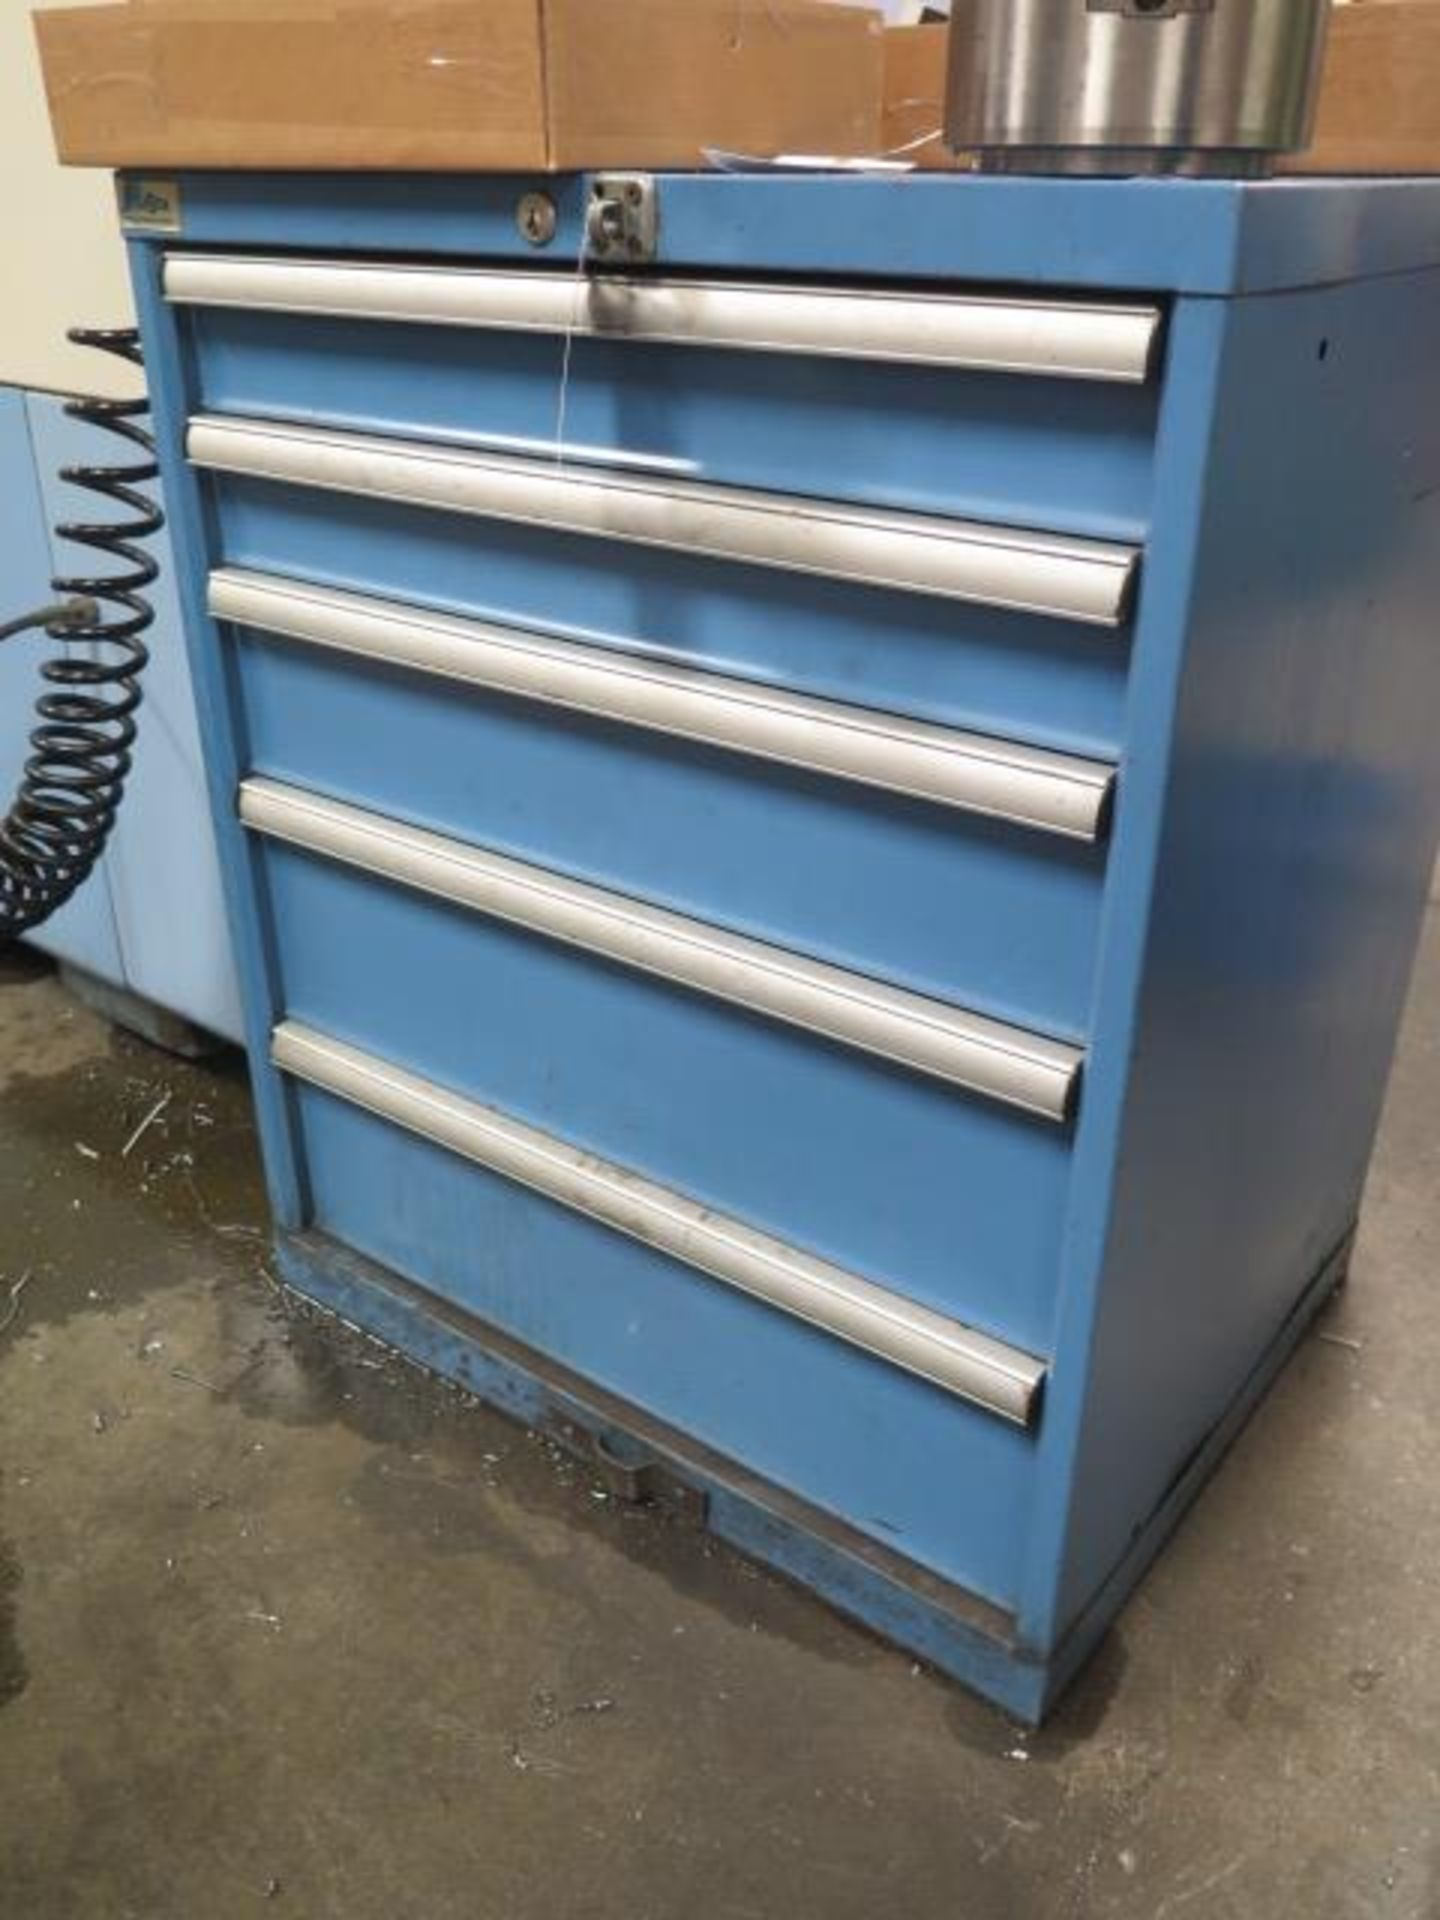 Lista 5-Drawer Tooling Cabinet w/ Chuck Jaws (SOLD AS-IS - NO WARRANTY)